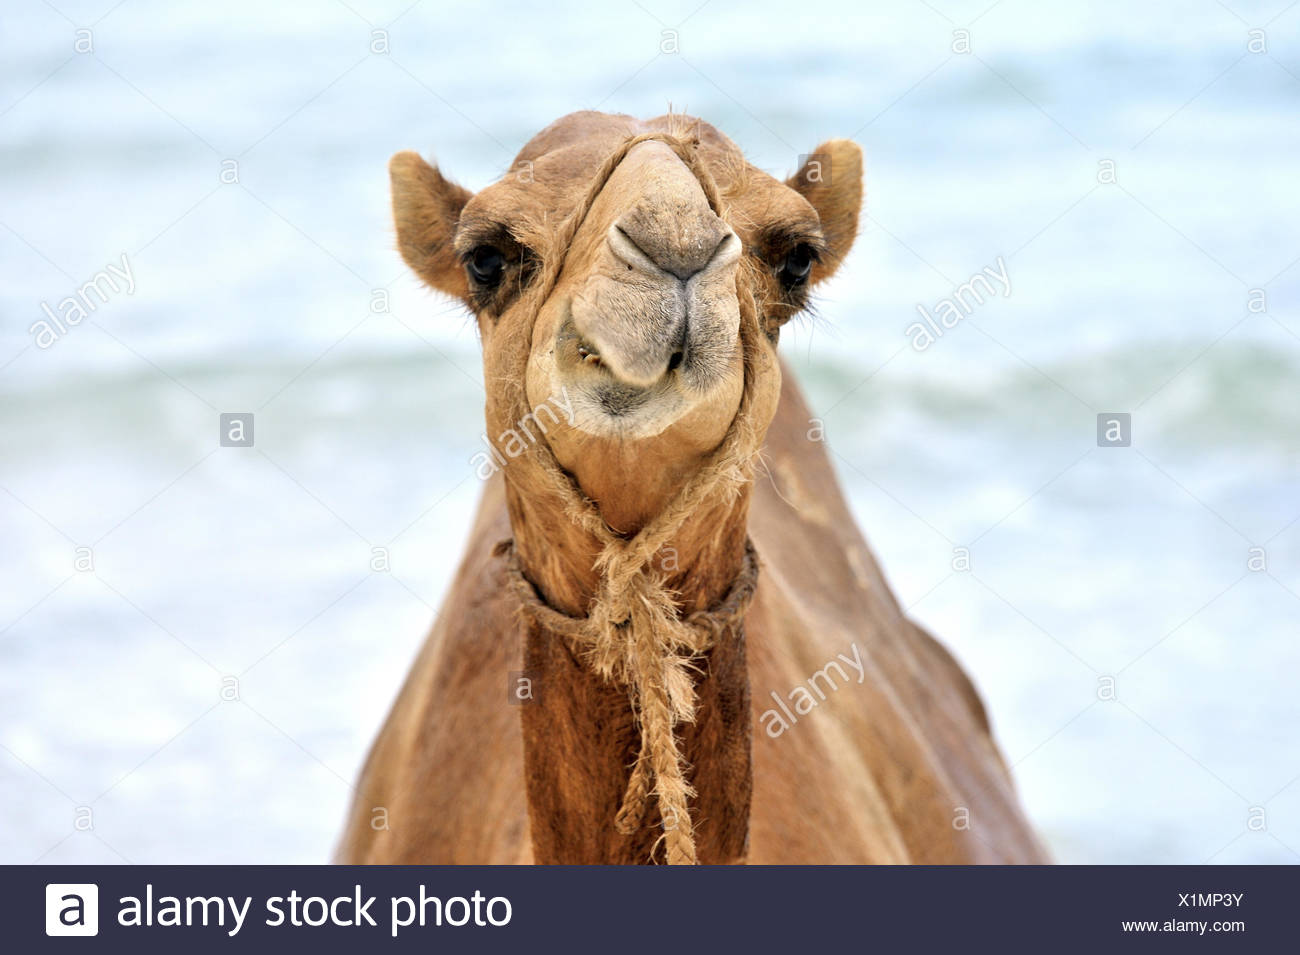 Funny Camel gritting its teeth - Stock Image